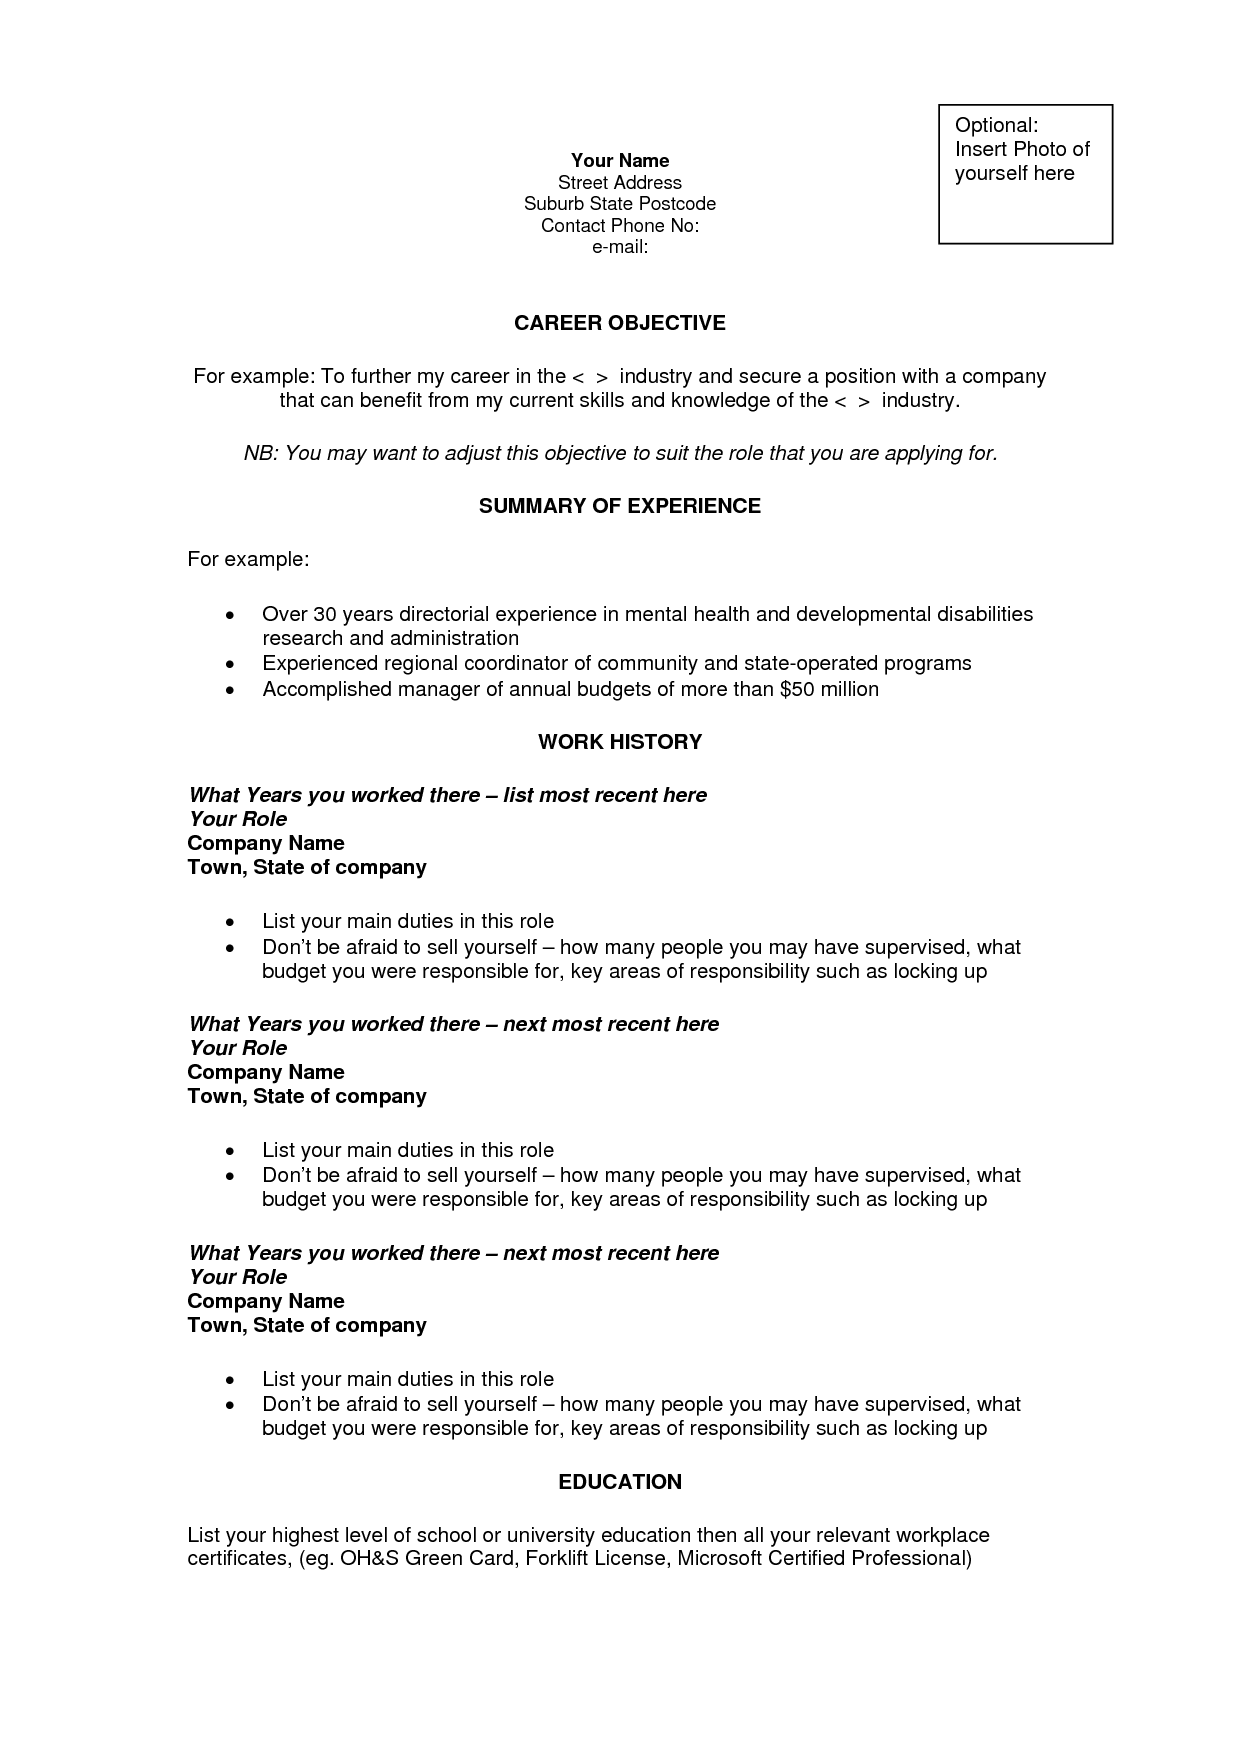 professional resume career objective examples